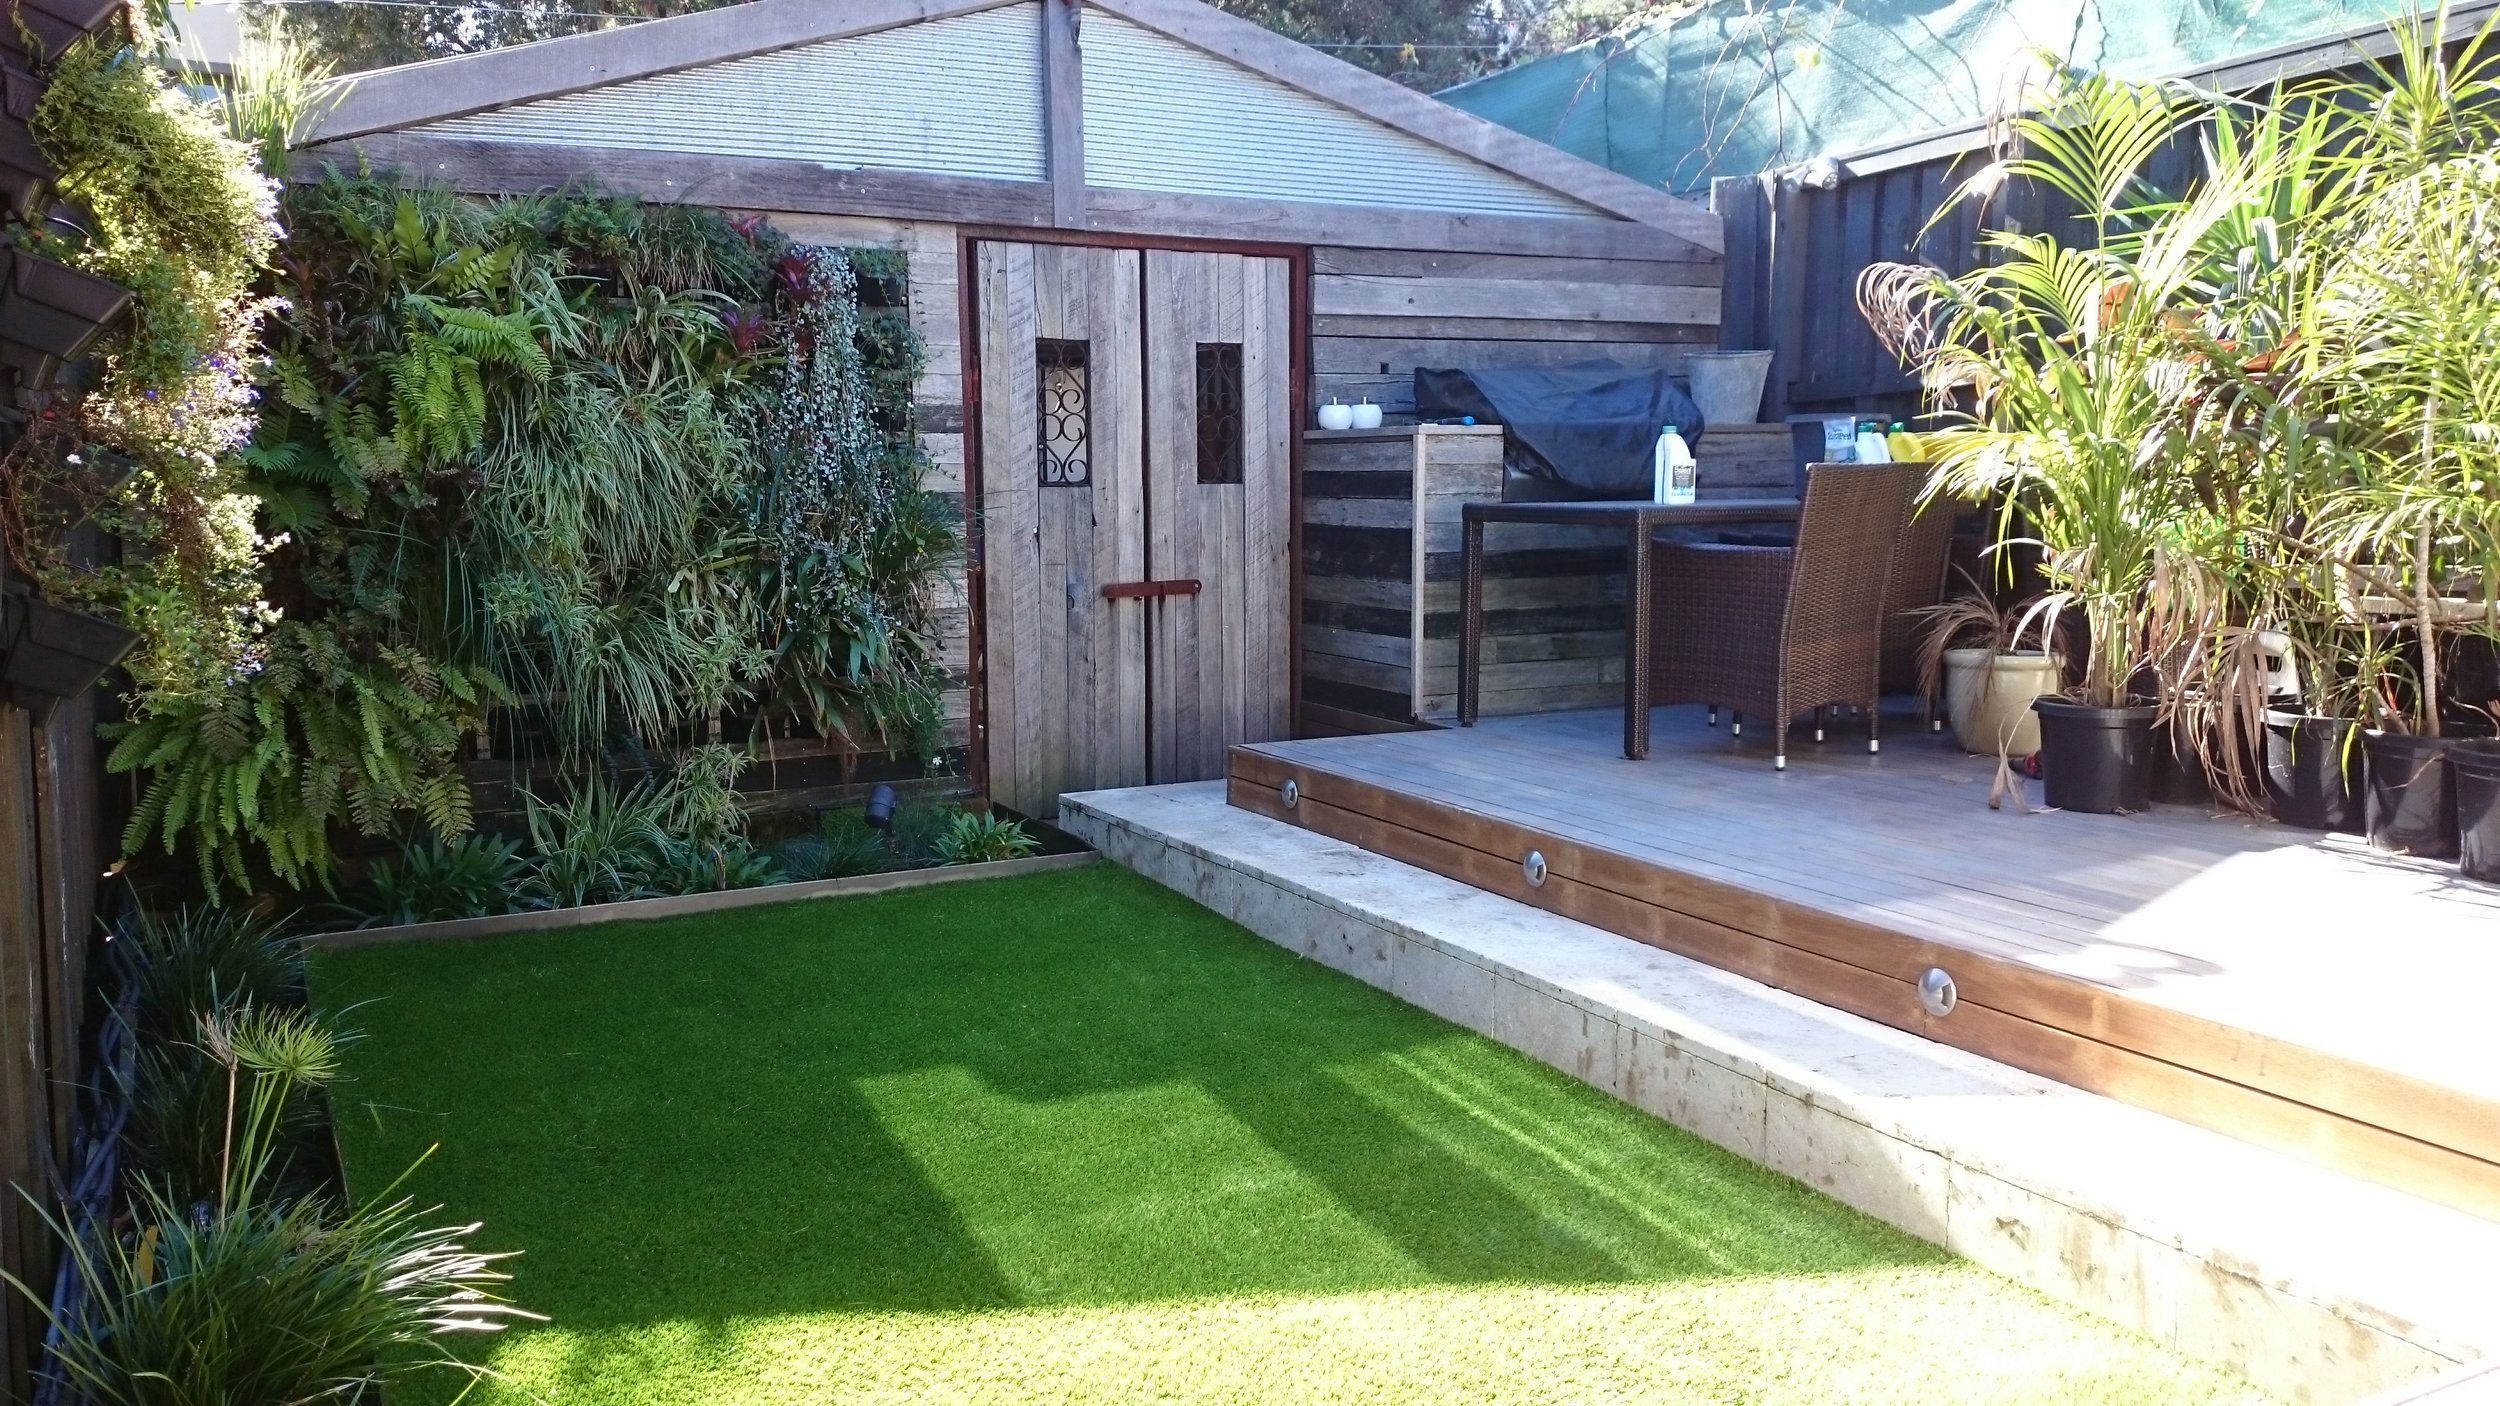 Interesting garden design for a small space. This garden has utilised all of their space, which is small. They have converted the fences and shed walls to gardens with their green walls. Grass is not an option for this garden as it is too shady, so the use of synthetic grass just lifts the area. Making the space look larger.